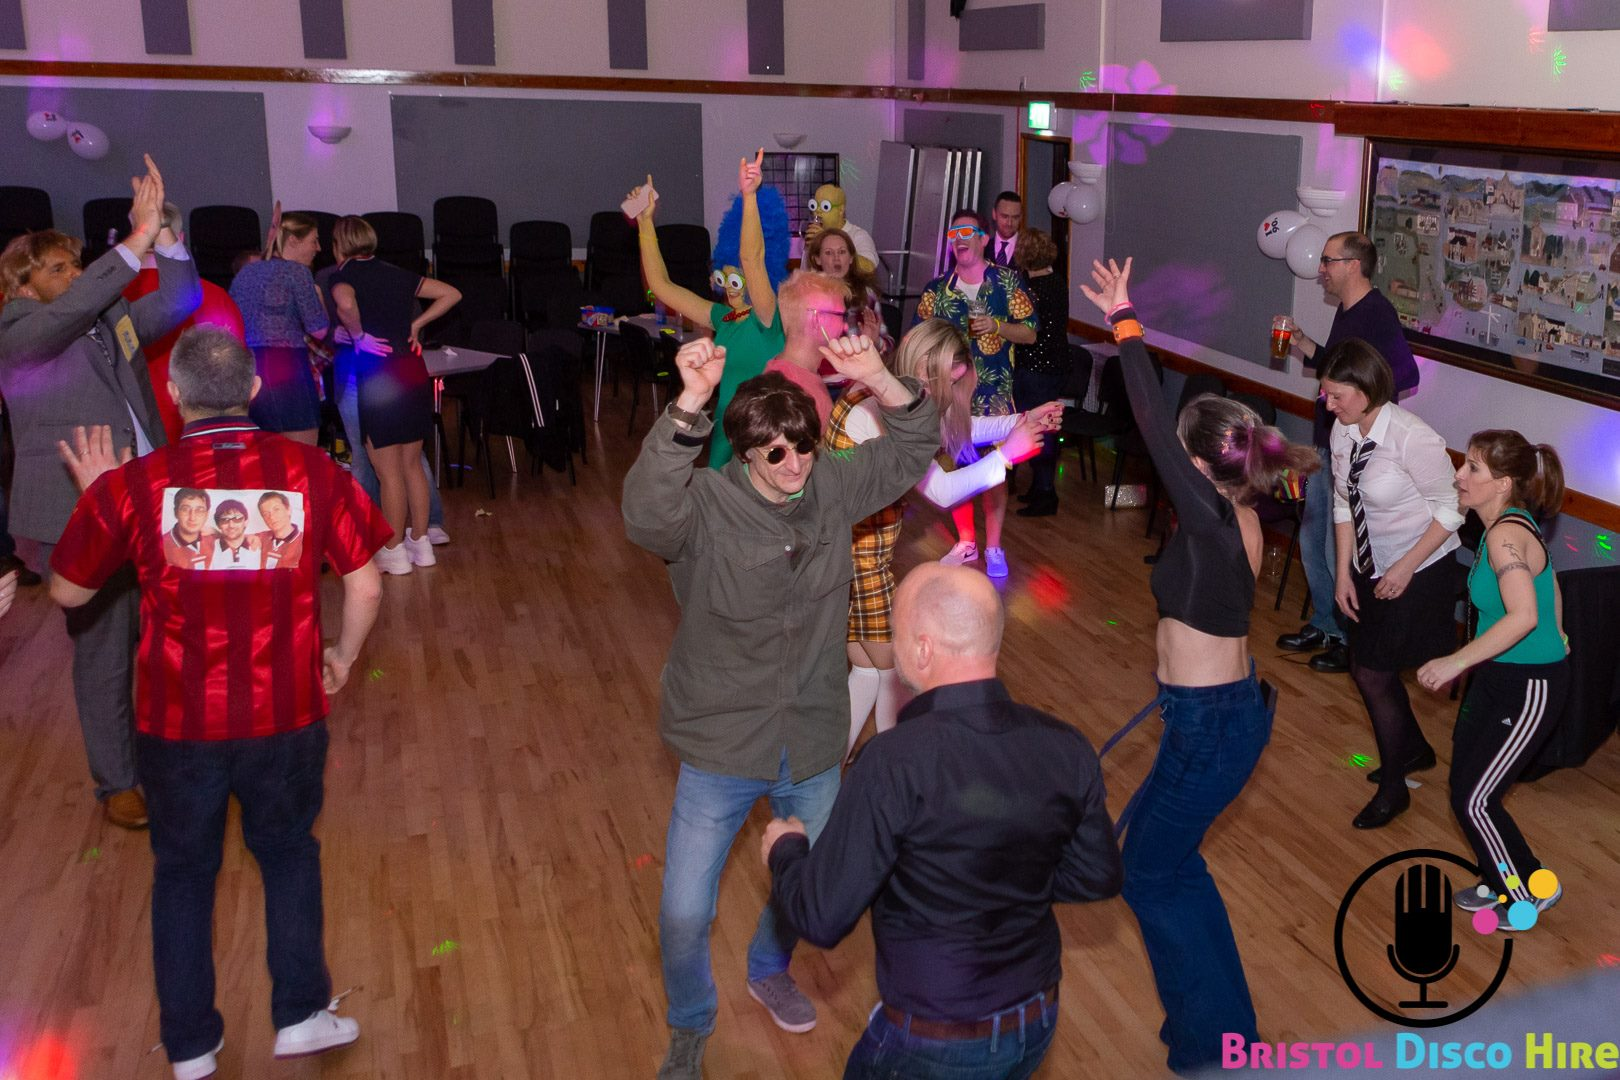 Kingswood Village Hall - 90's music only!